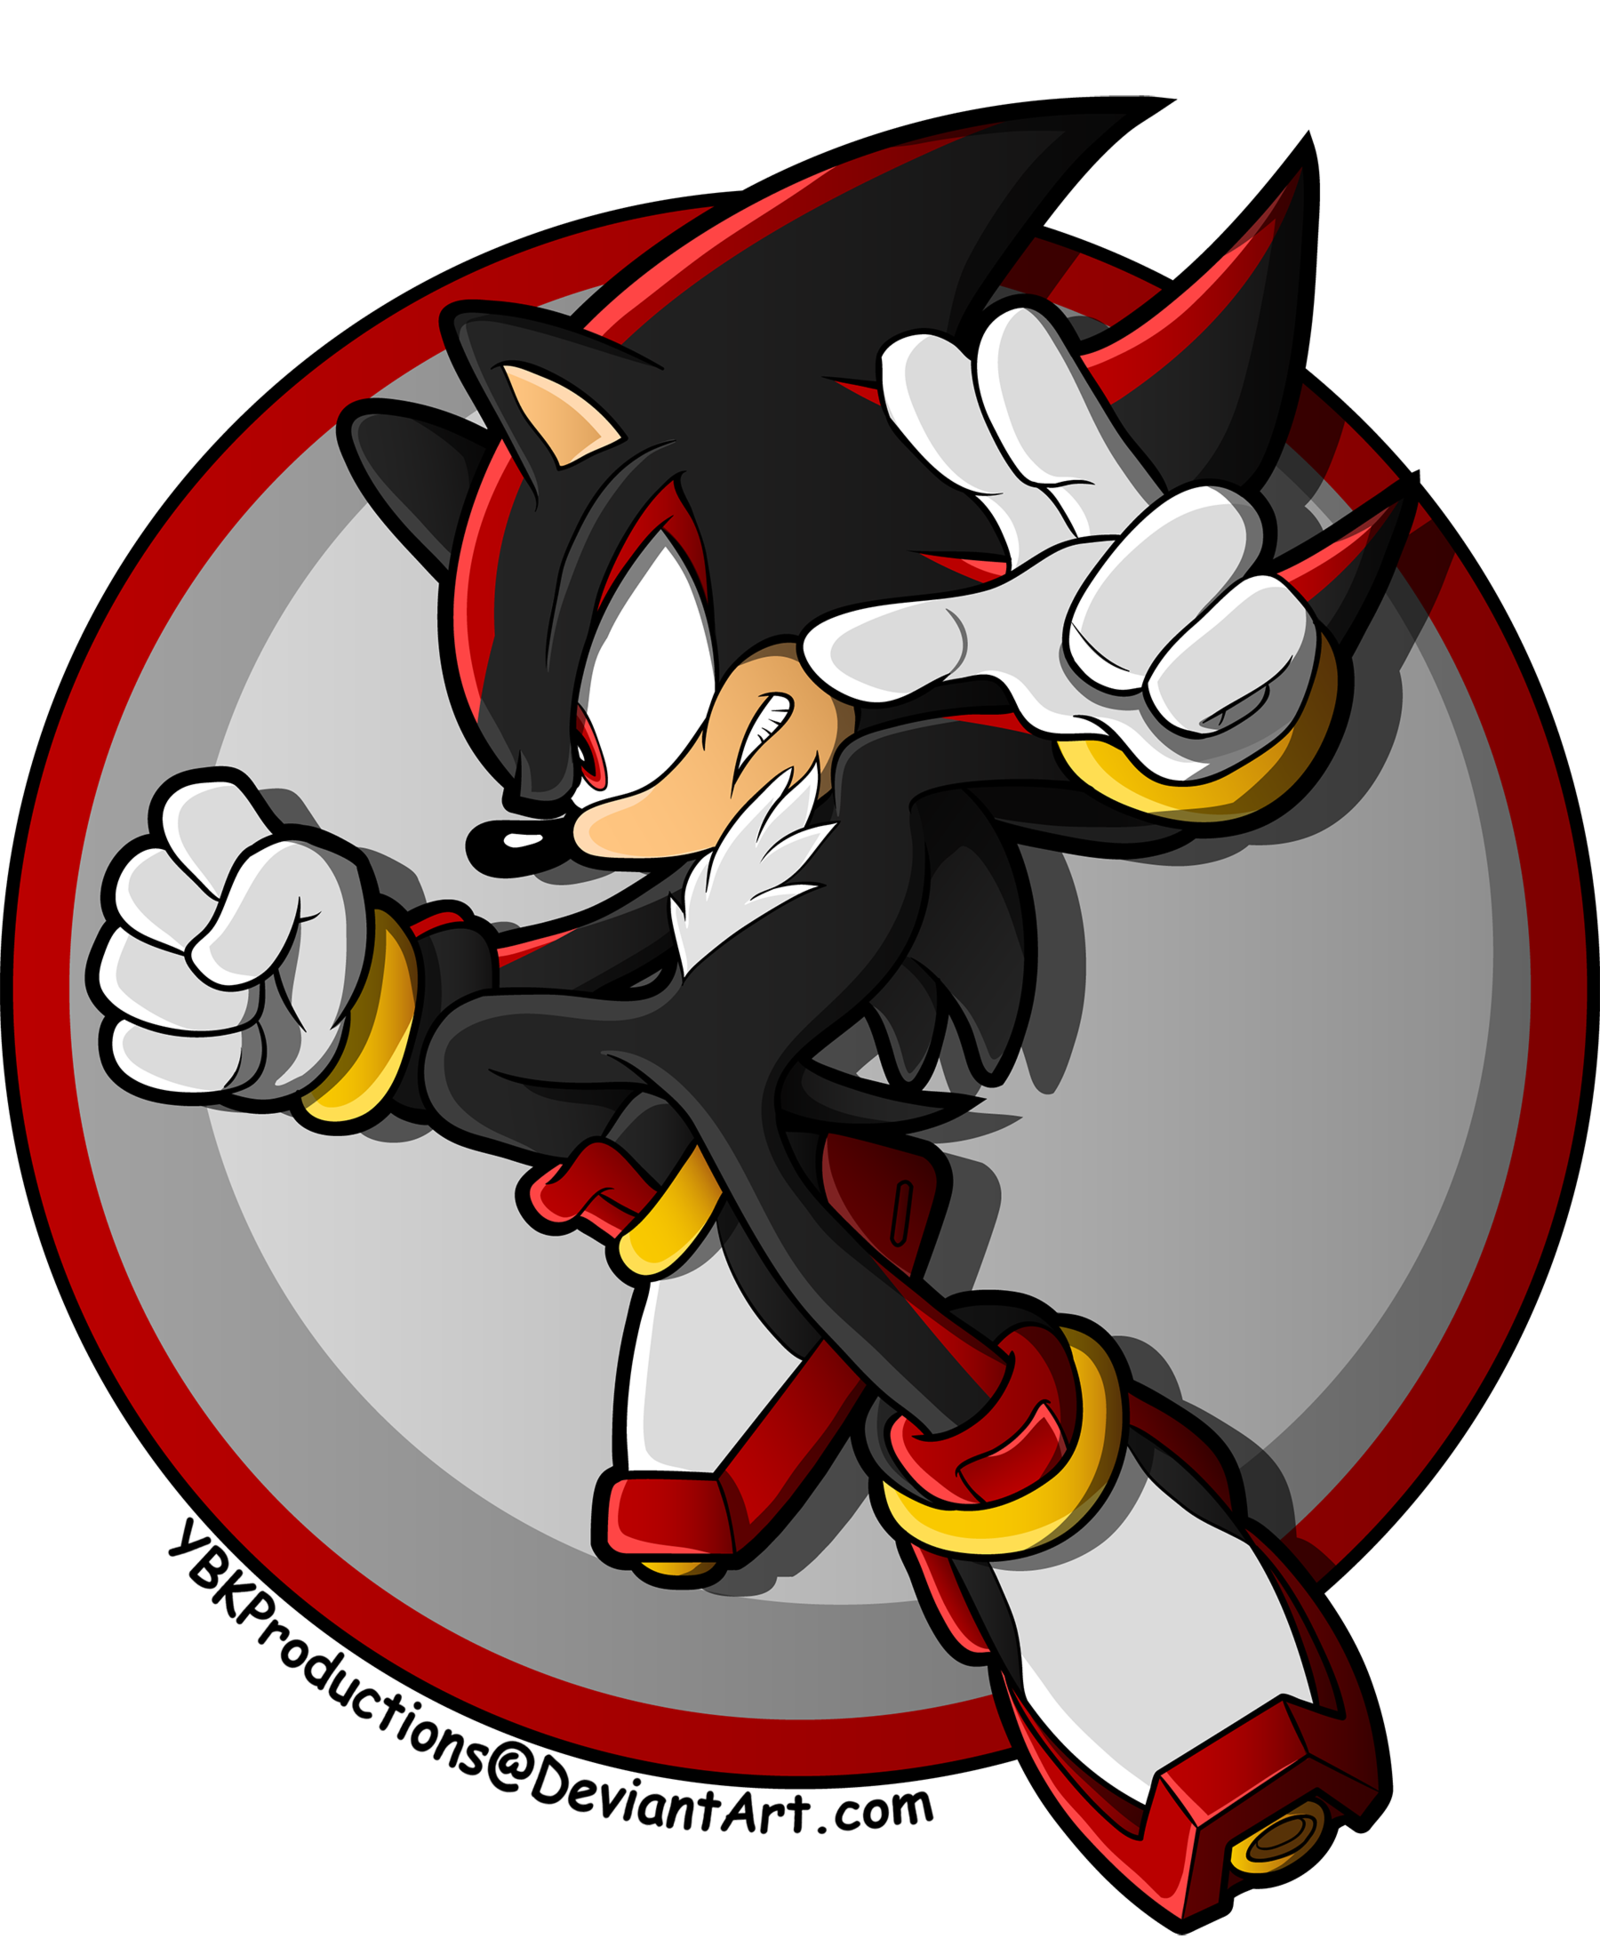 Shadow The Hedgehog Vector By Lvcproductions On Deviantart Blum Raznoe